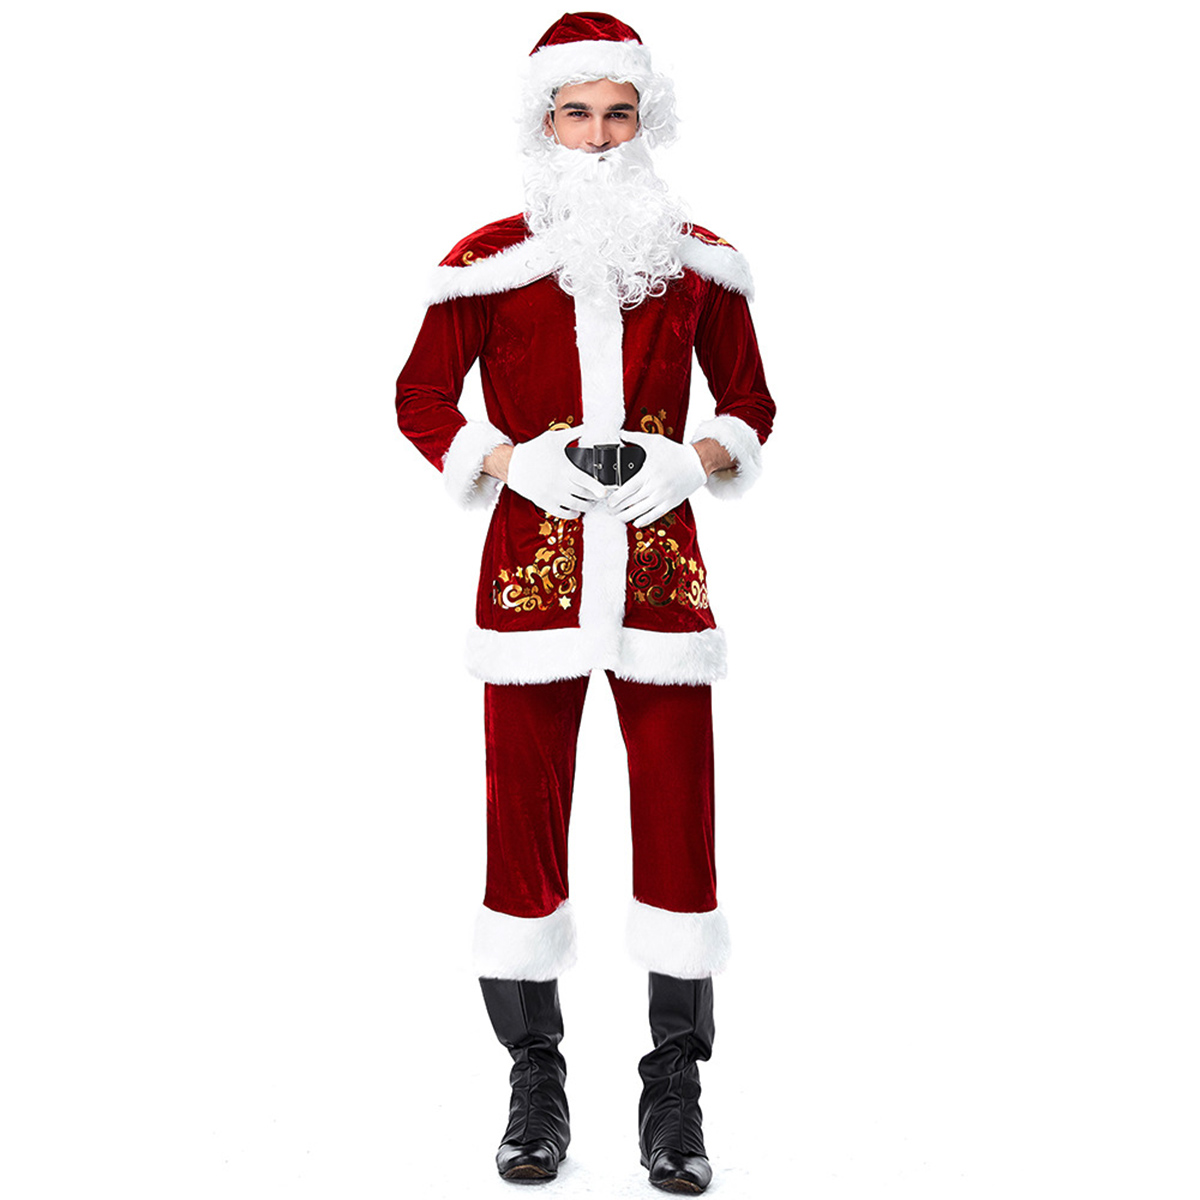 Christmas Santa Claus Costume Plush Size Deluxe Velour Party Suit Adult Cosplay